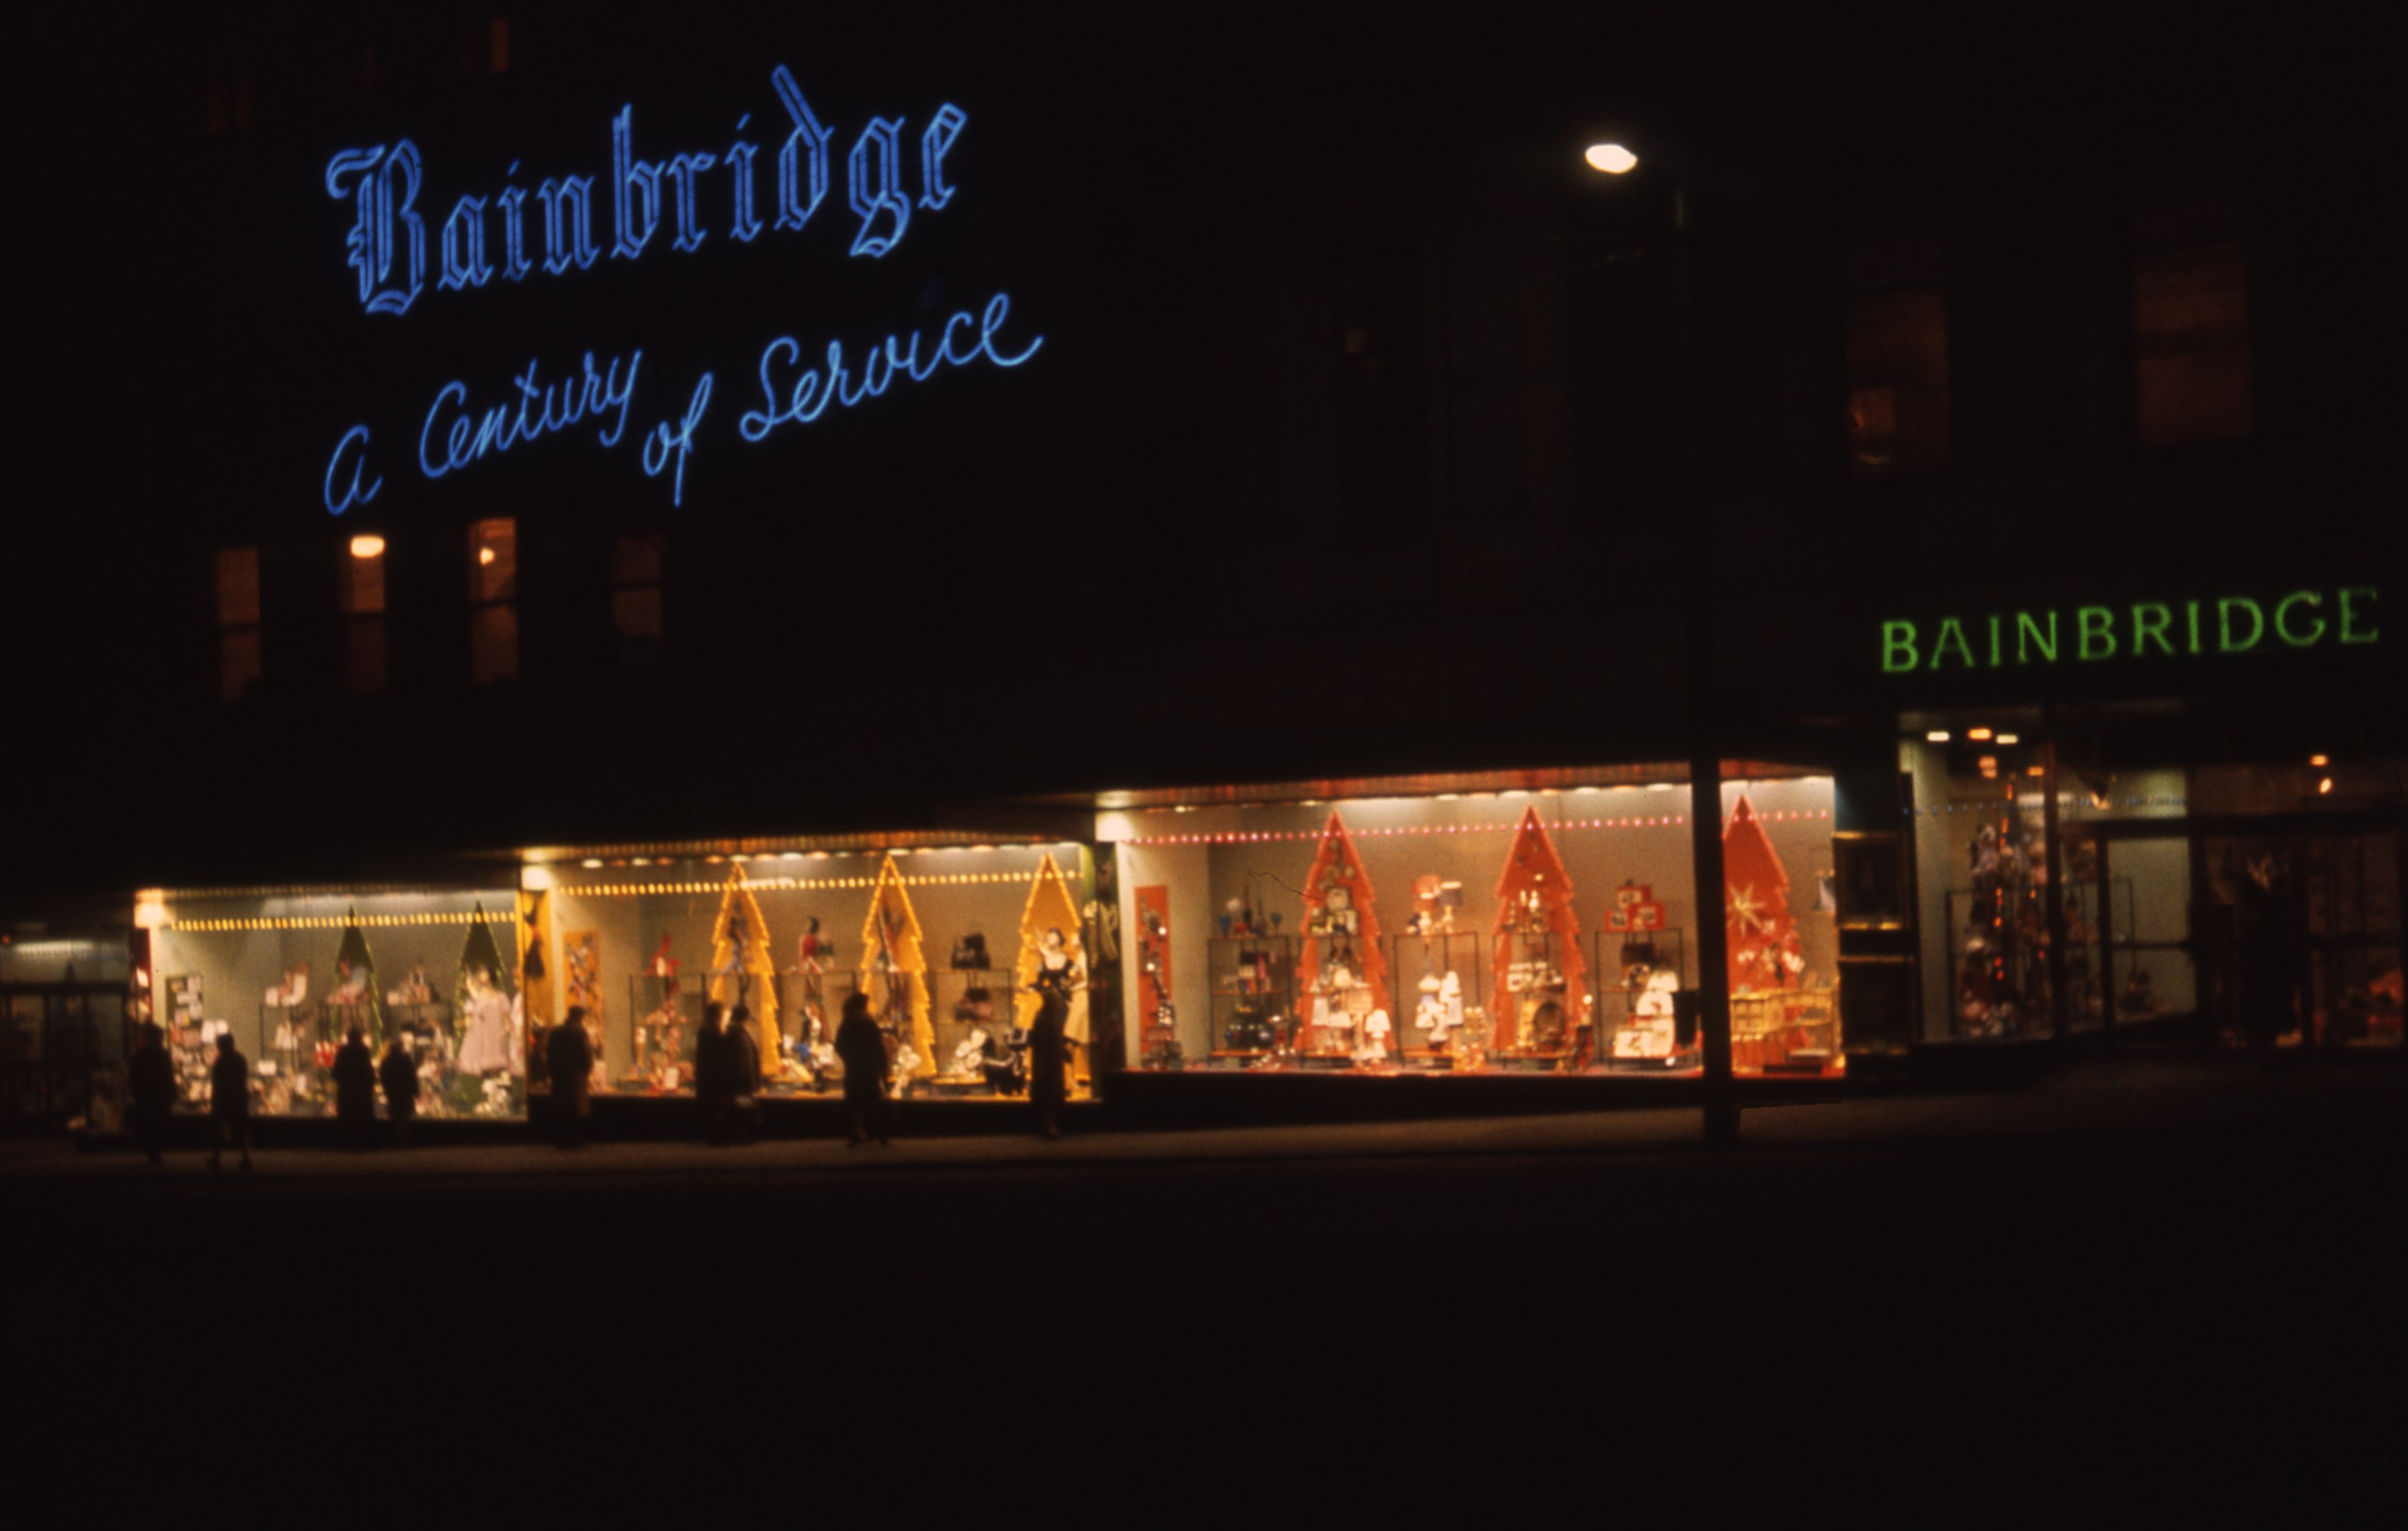 "It shows a view of the decorated Christmas window of Bainbridge's in Newcastle upon Tyne. The sign reads ""Bainbridge, a century of service."" This is a 35mm slide. It was taken in 1962."